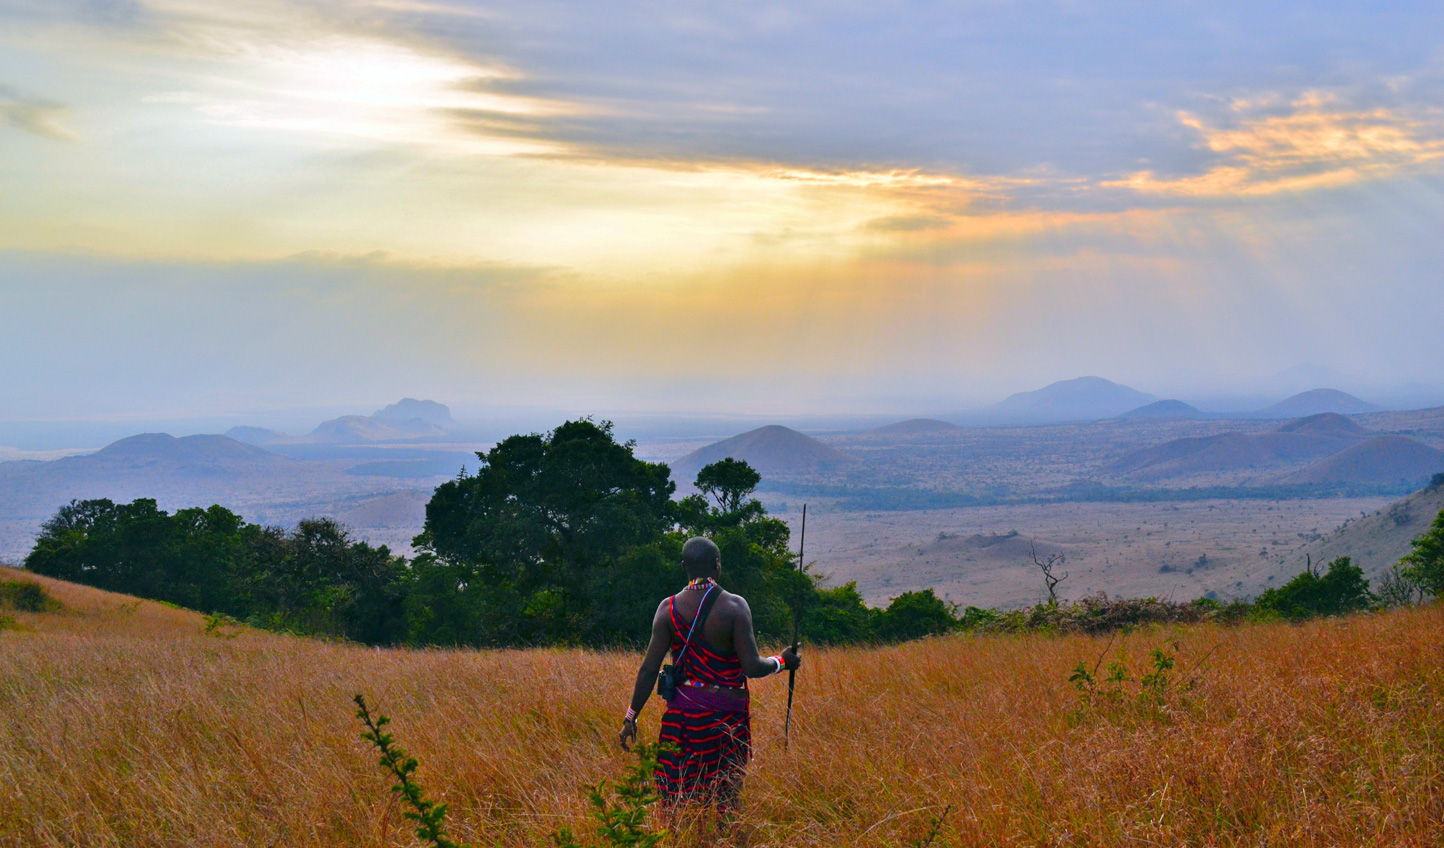 Discover the Mara through the eyes of the Maasai